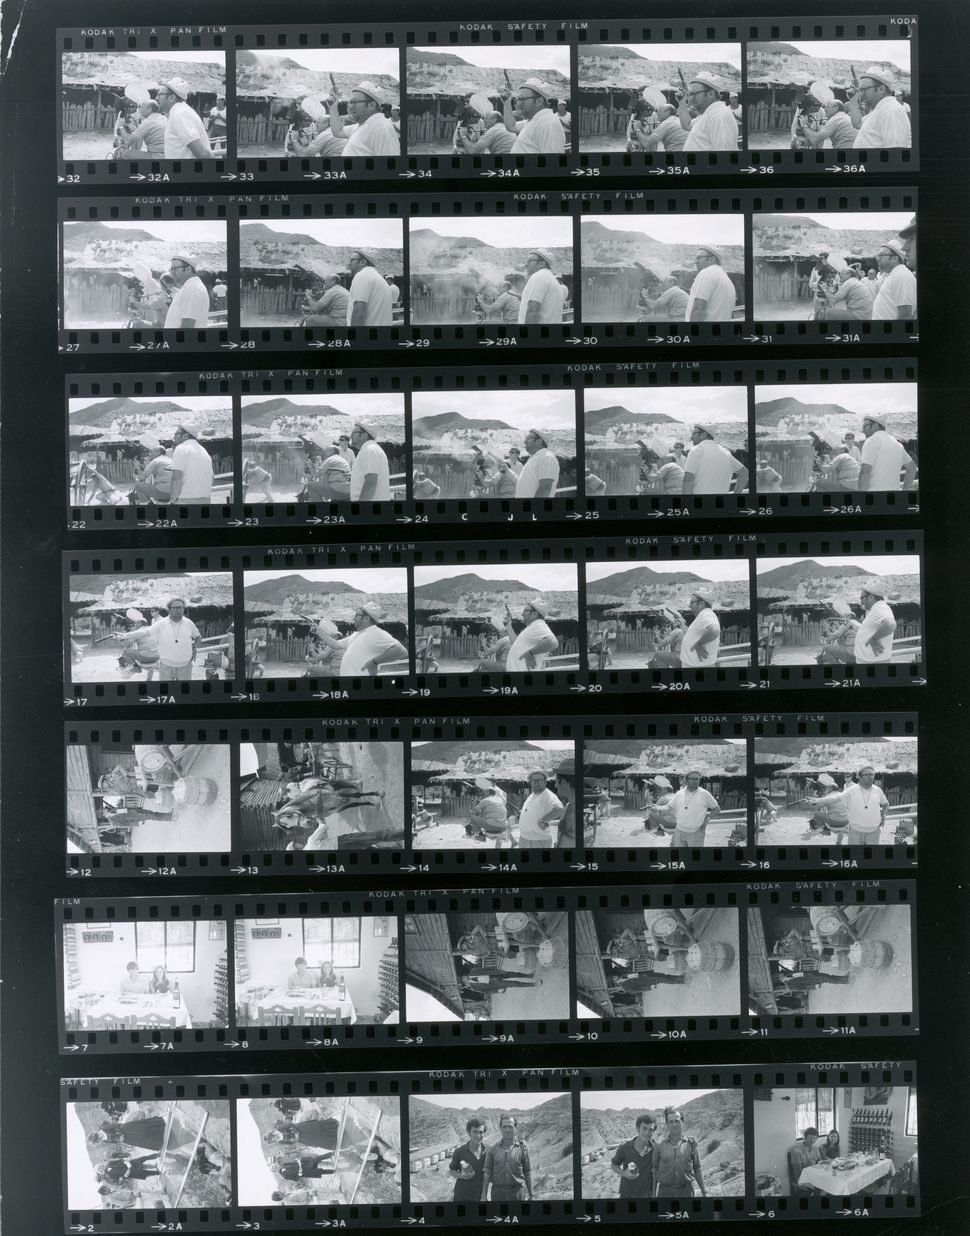 Contact Sheet From 'Once Upon A Time In The West'